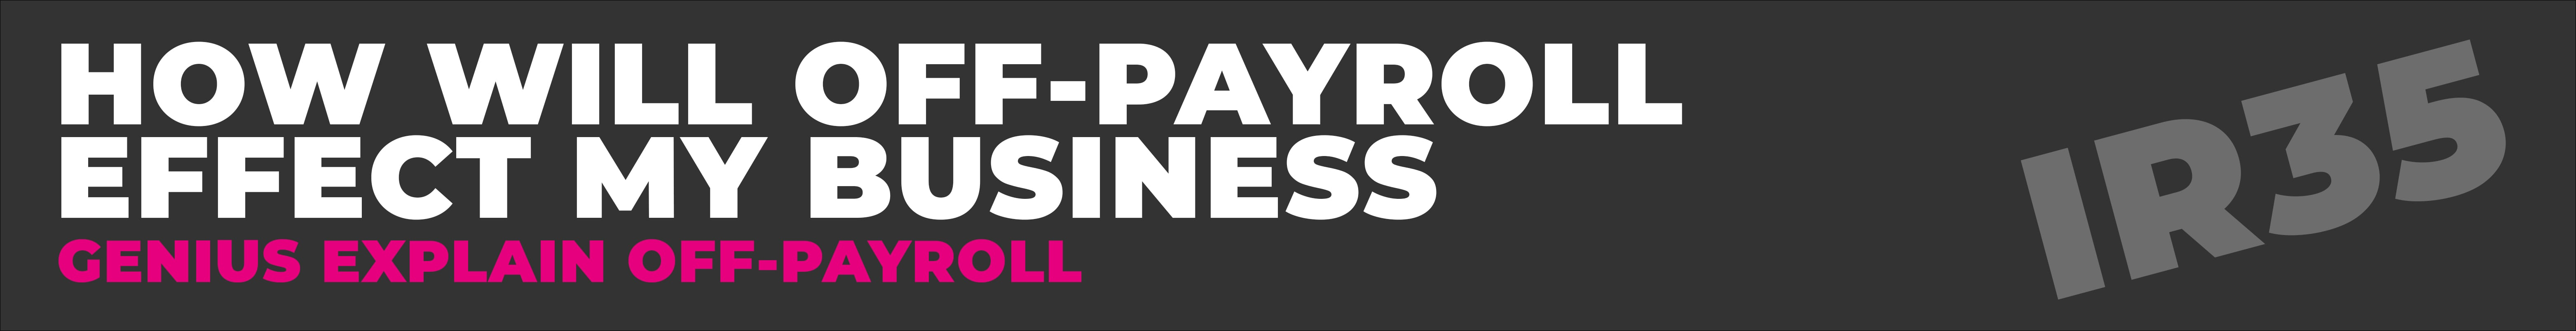 PAYE PAYROLL -How Off-Payroll      effects my business? Genius Explain